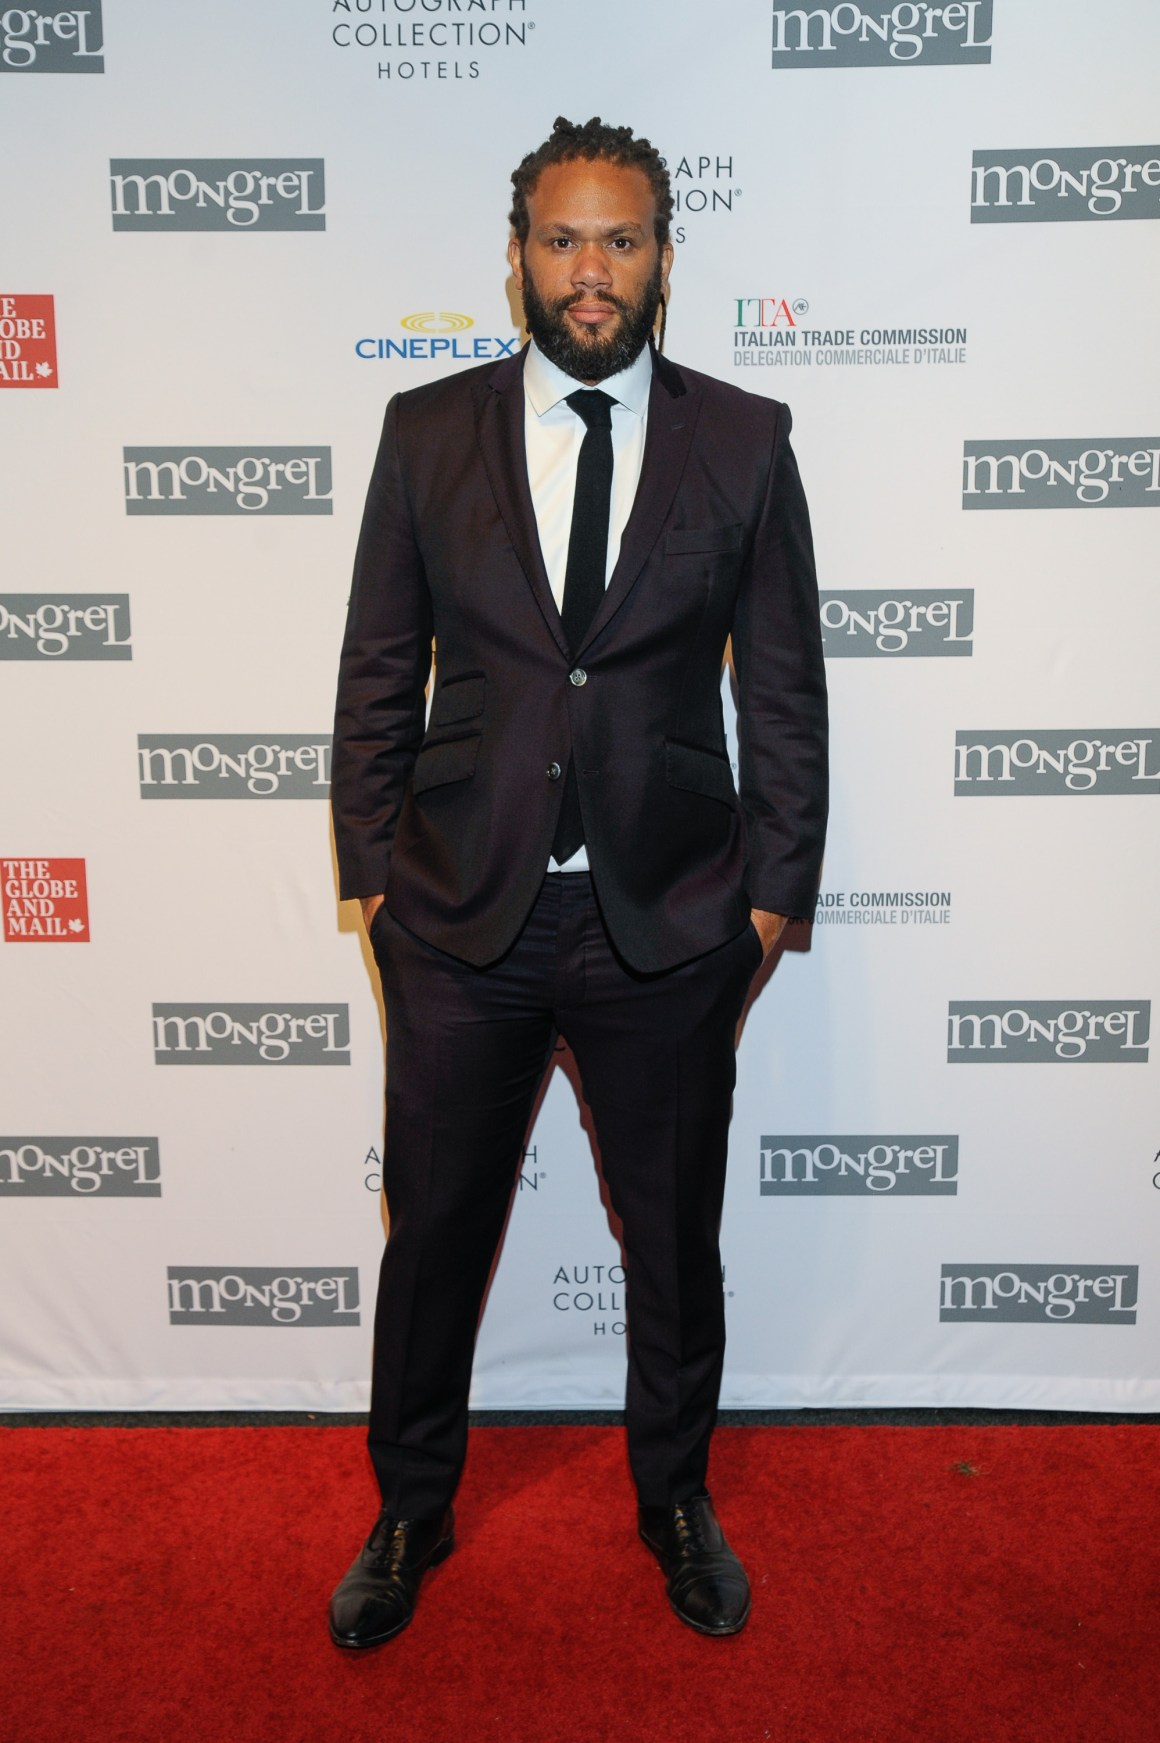 Film Executive Franklin Leonard attends the Mongrel Media Celebrates TIFF at Mongrel House. (Photo: Che Rosales/Getty Images for Mongrel Media) | View the VIBE